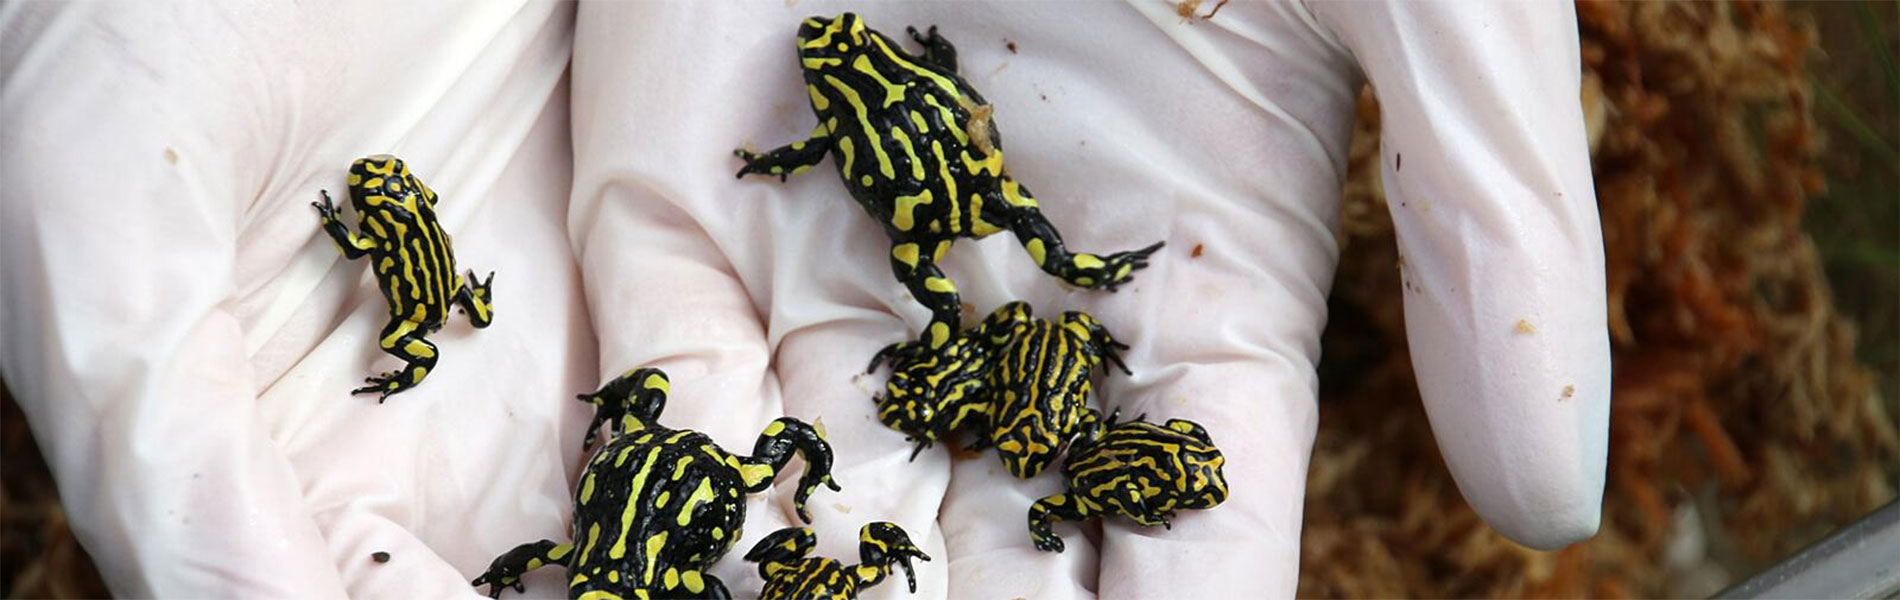 Australia's Southern corroboree frog (Pseudophryne corroboree) is one of the world's most endangered amphibians